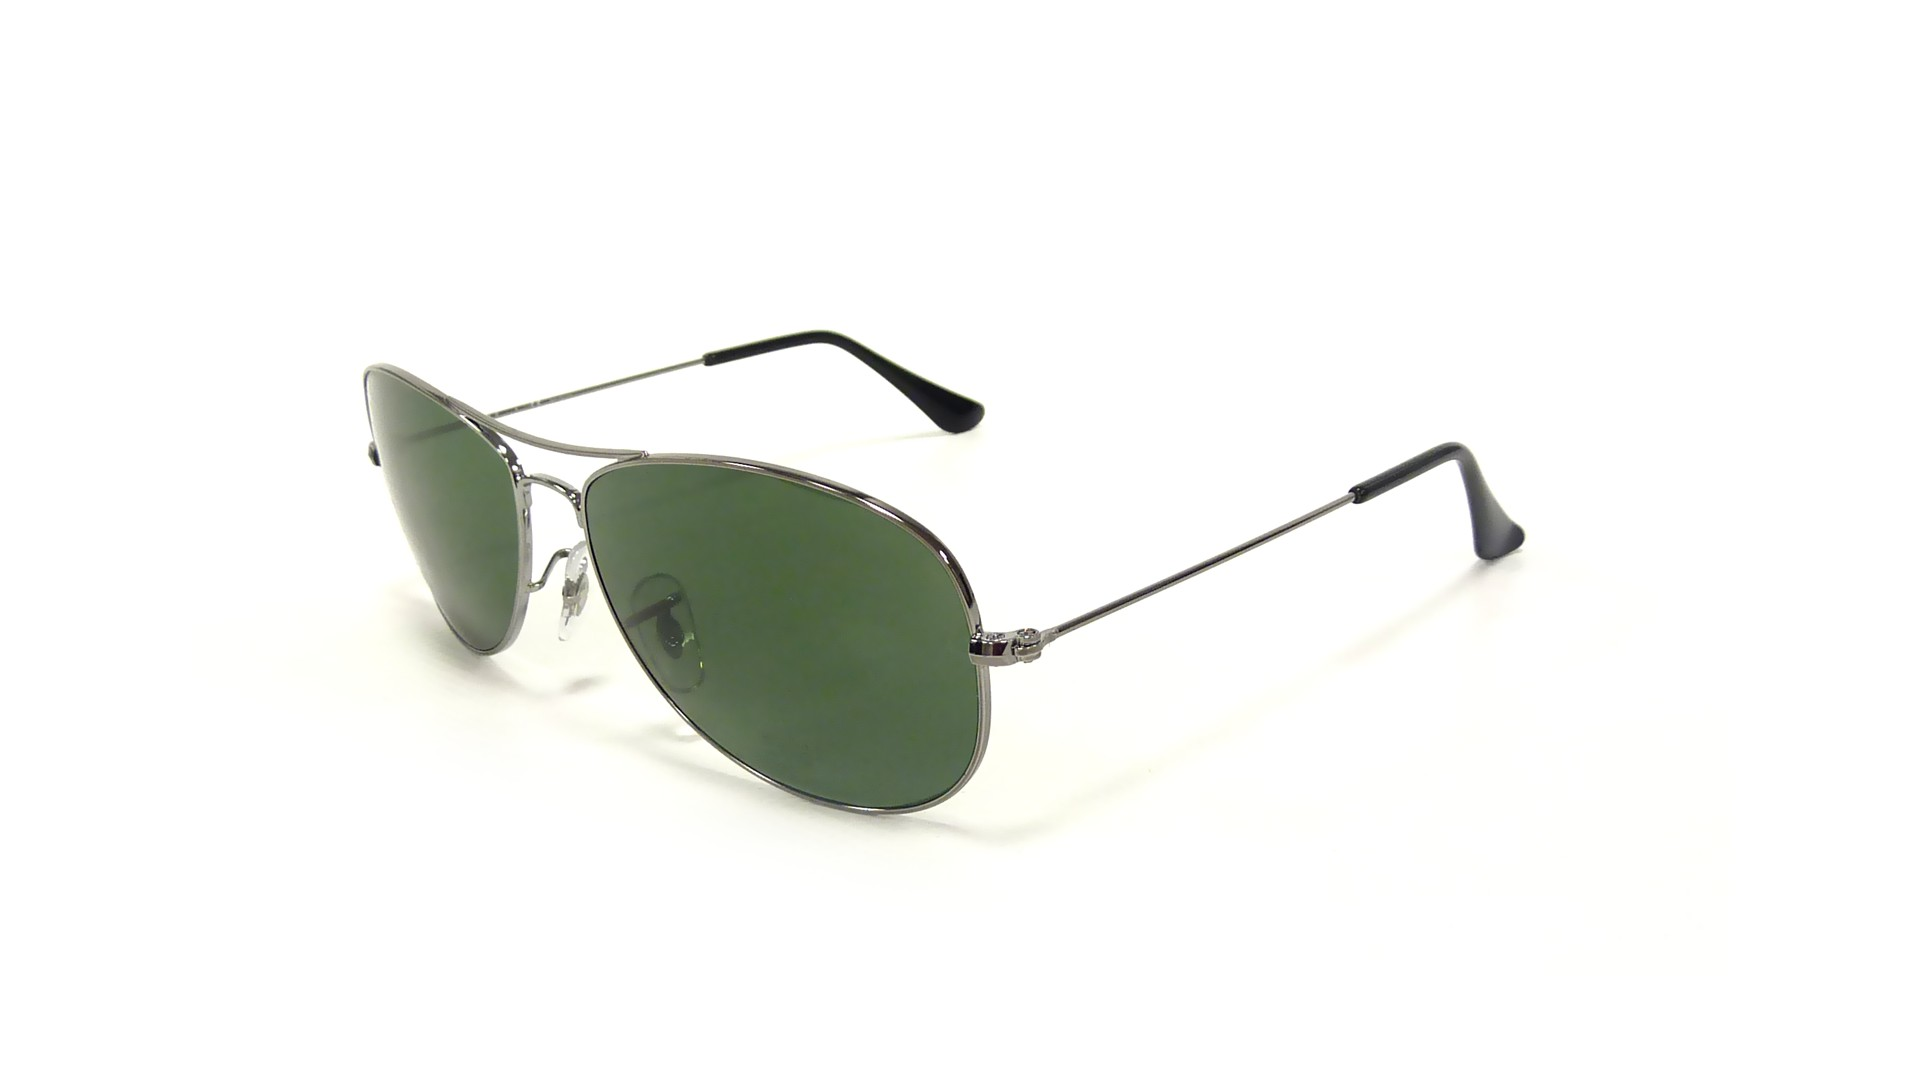 ffb22f1d8ed Sunglasses Ray-Ban Cockpit Silver RB3362 004 58 59-14 Large Polarized